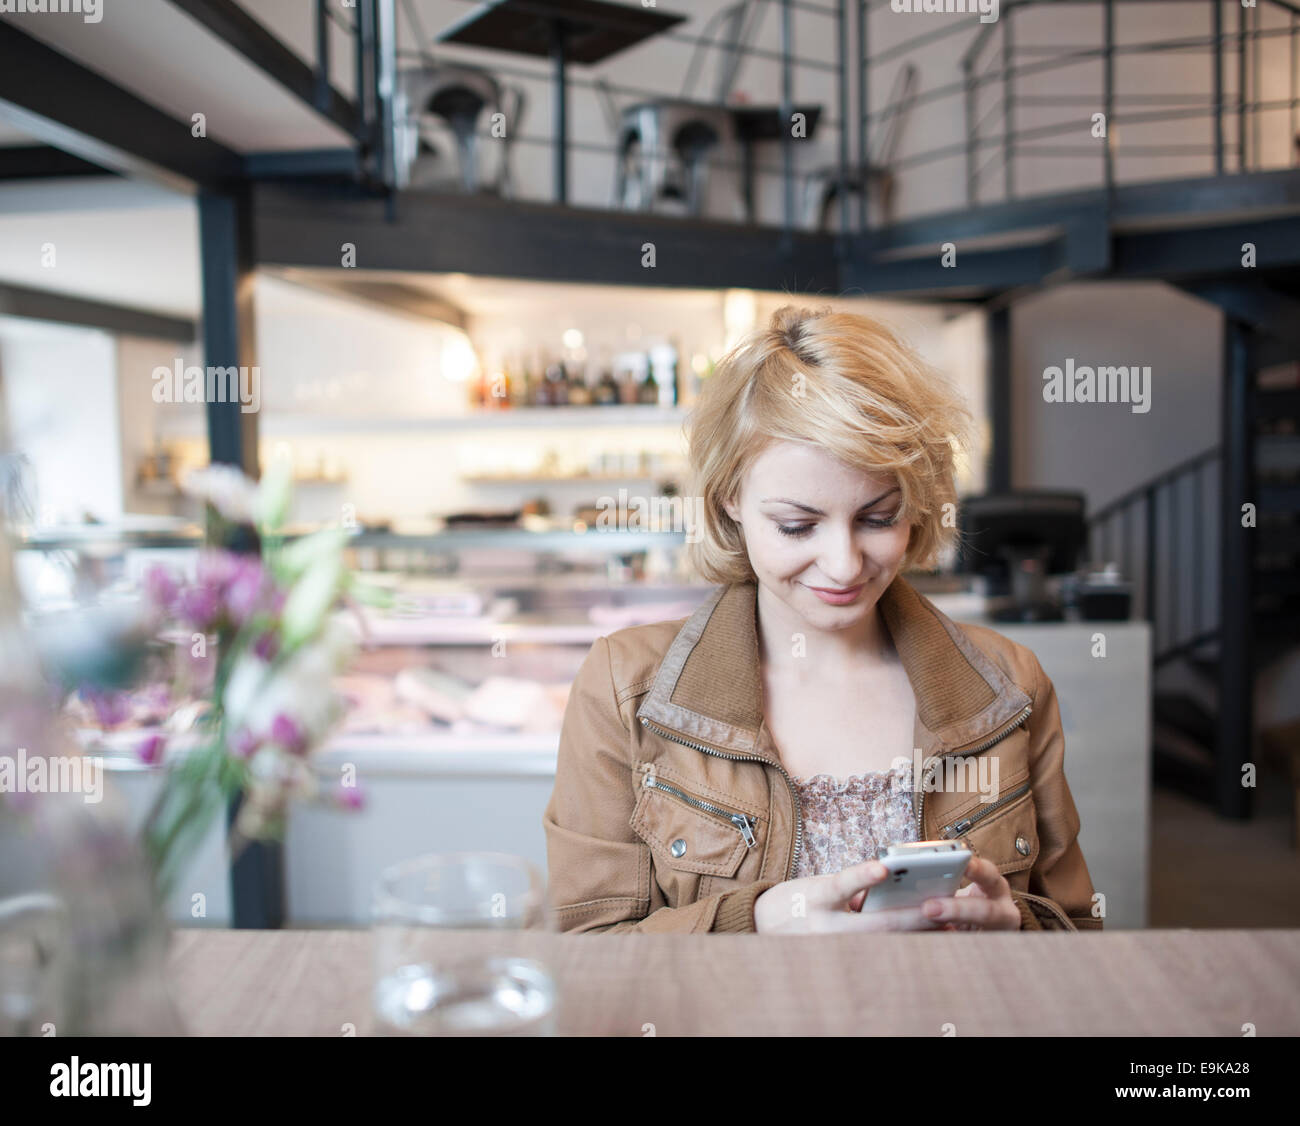 Happy young woman reading text message on cell phone in cafe - Stock Image